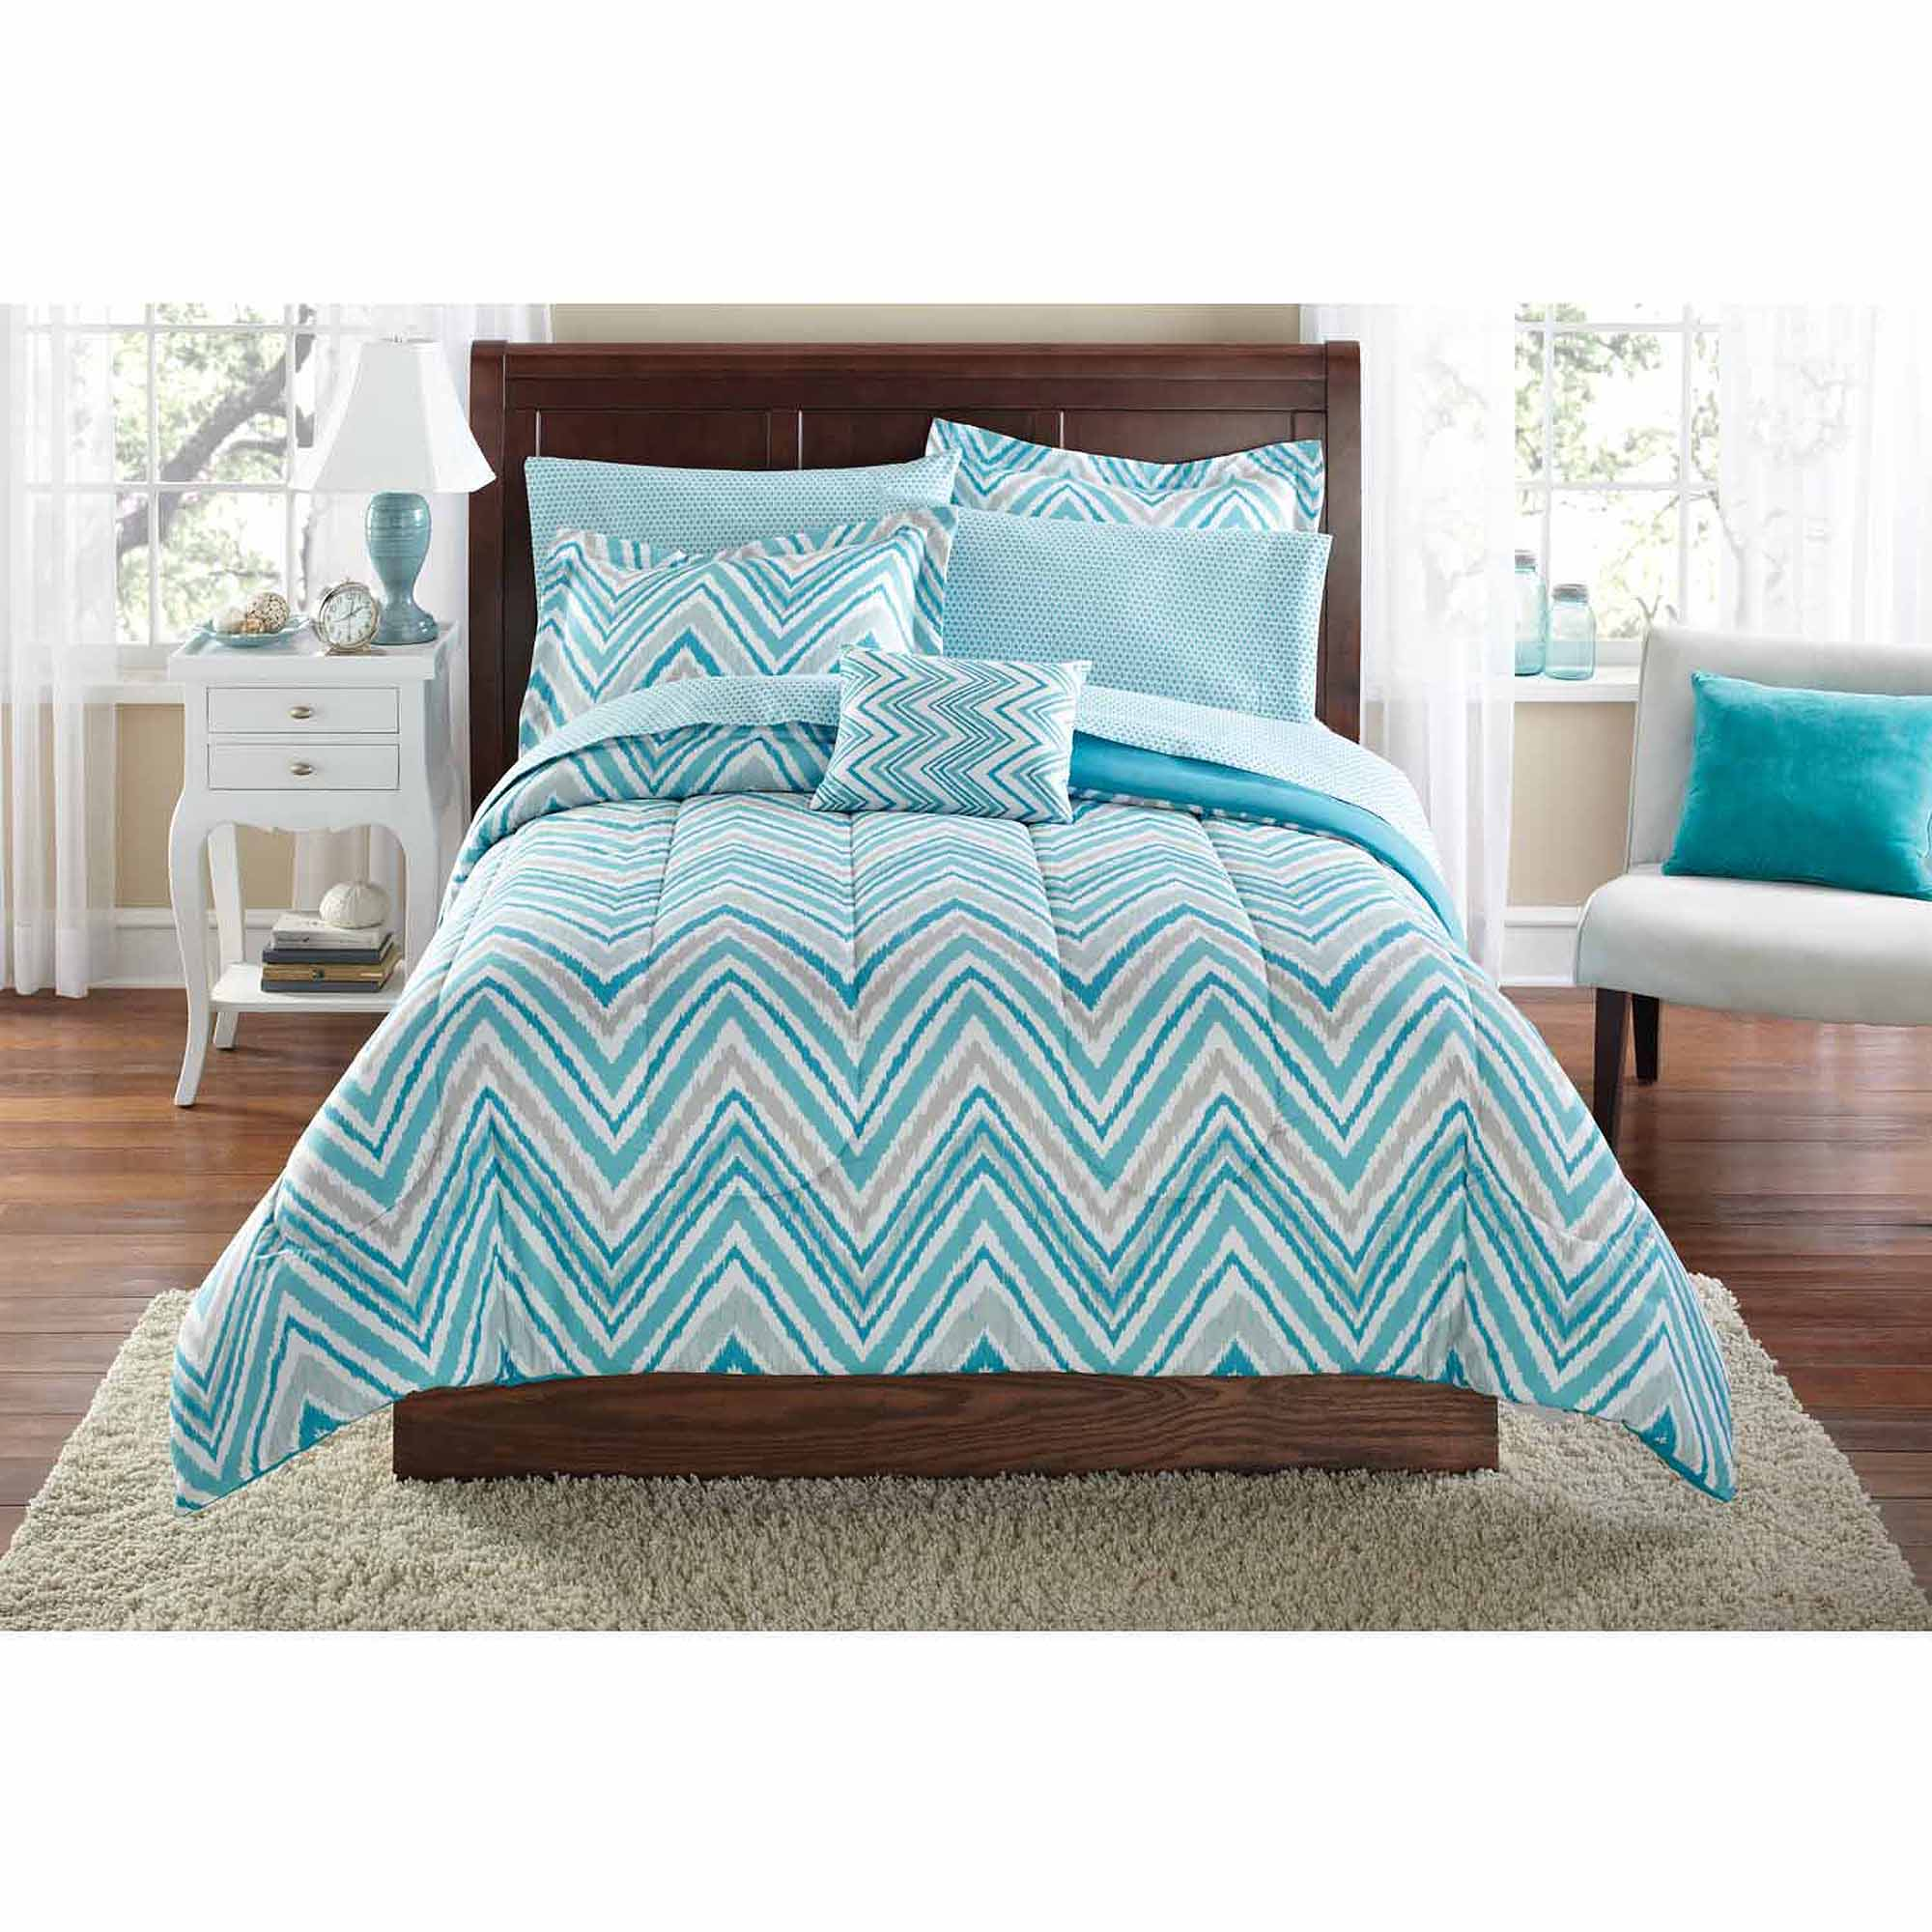 Mainstays Watercolor Chevron Bed in a Bag Bedding Set - Walmart.com